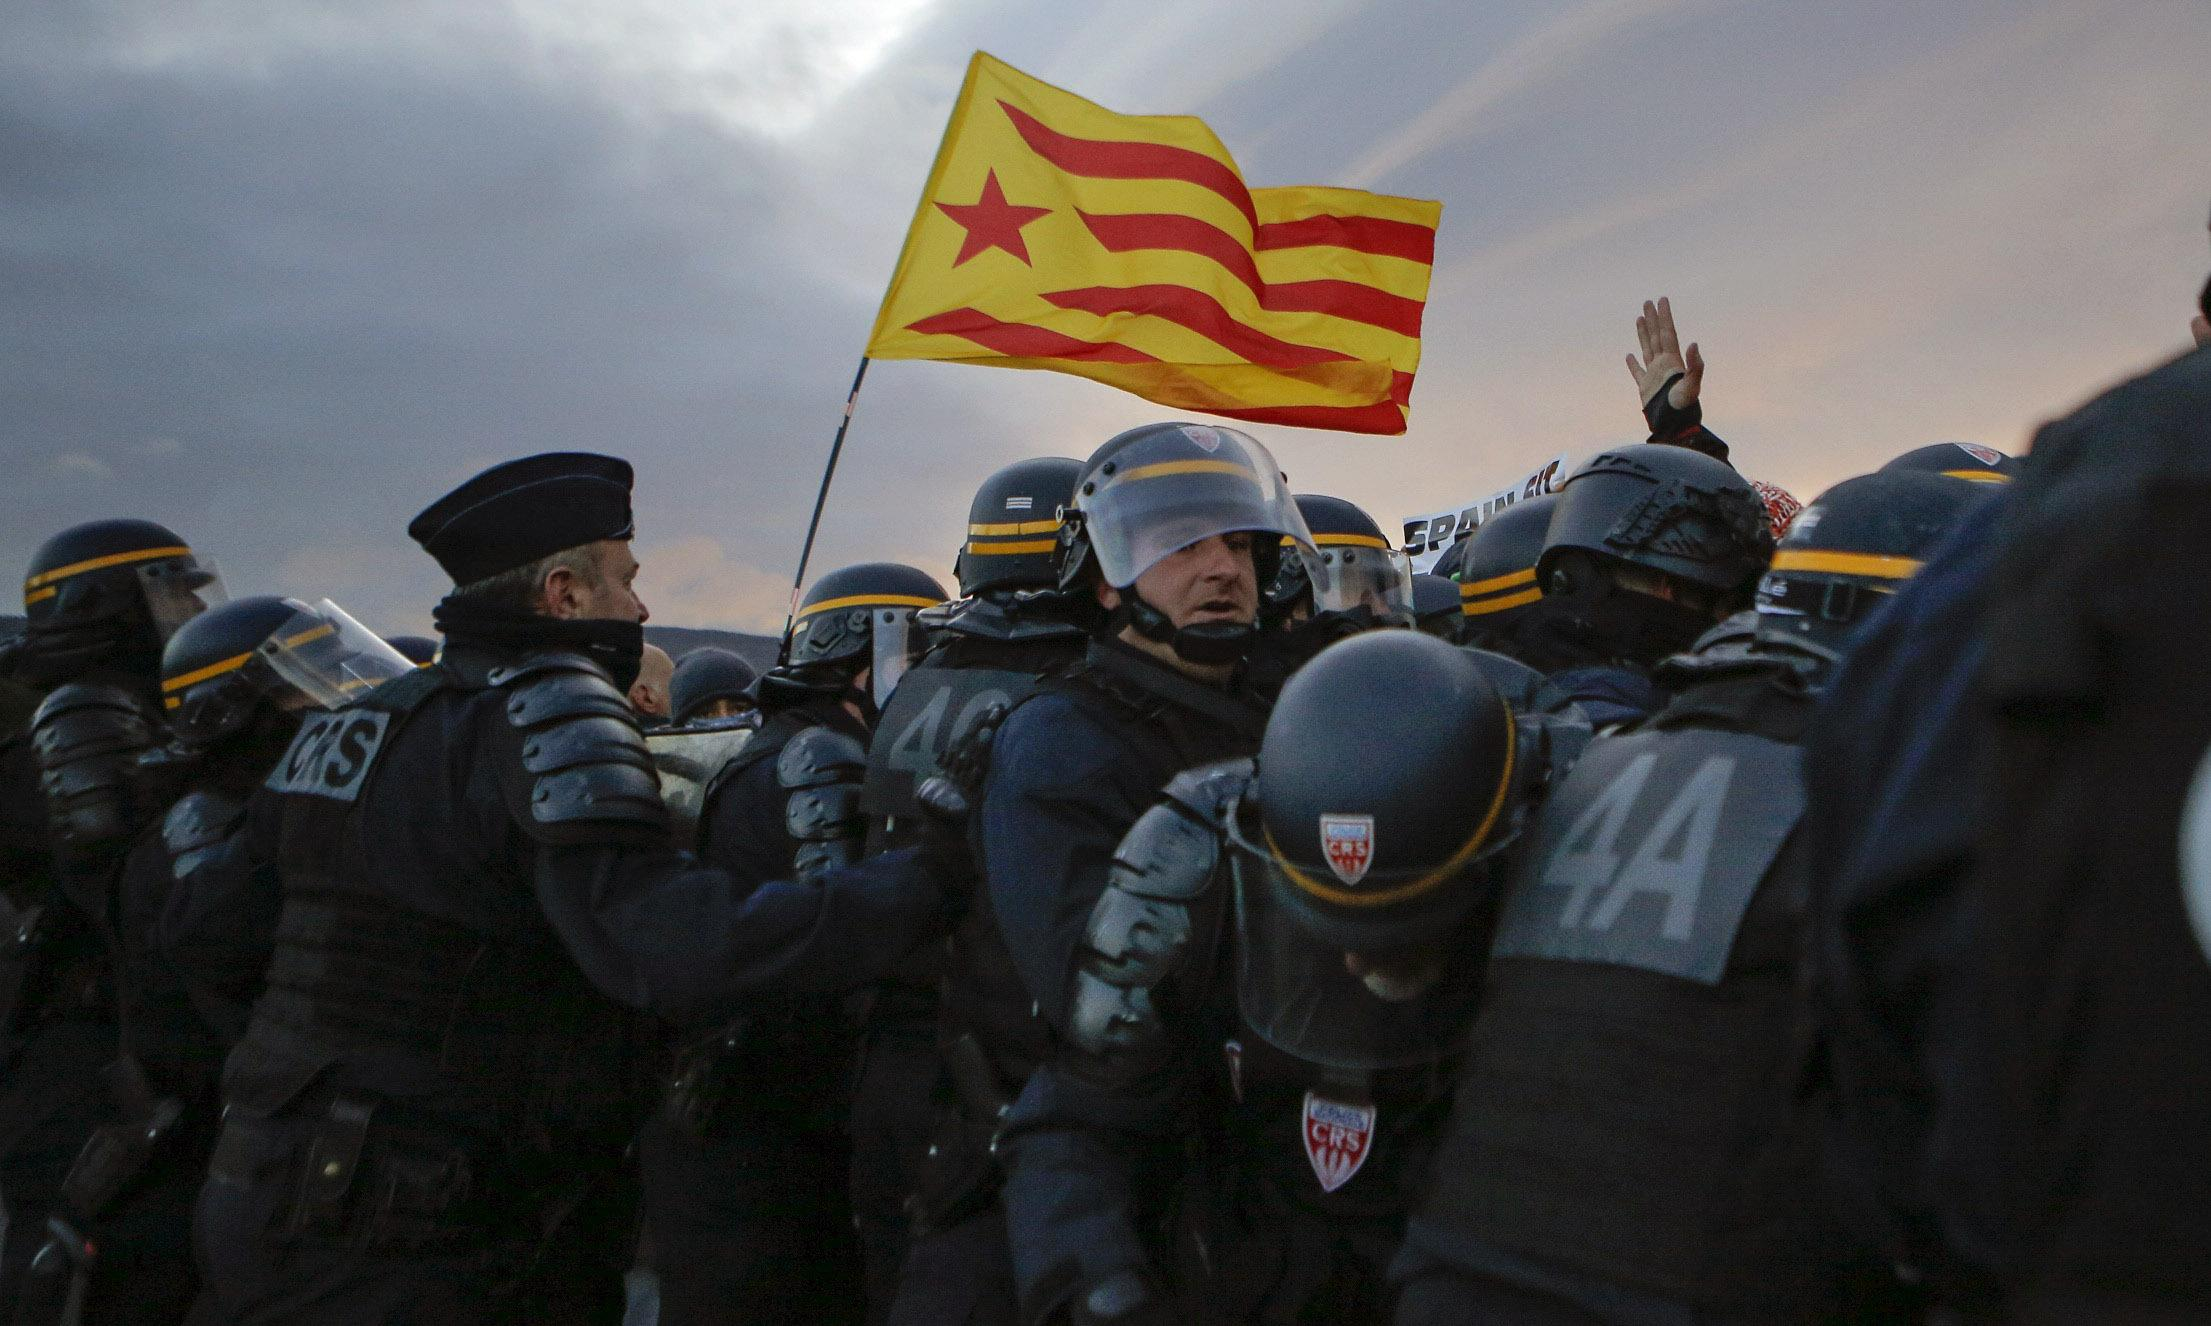 French police clear Catalan independence protesters from road